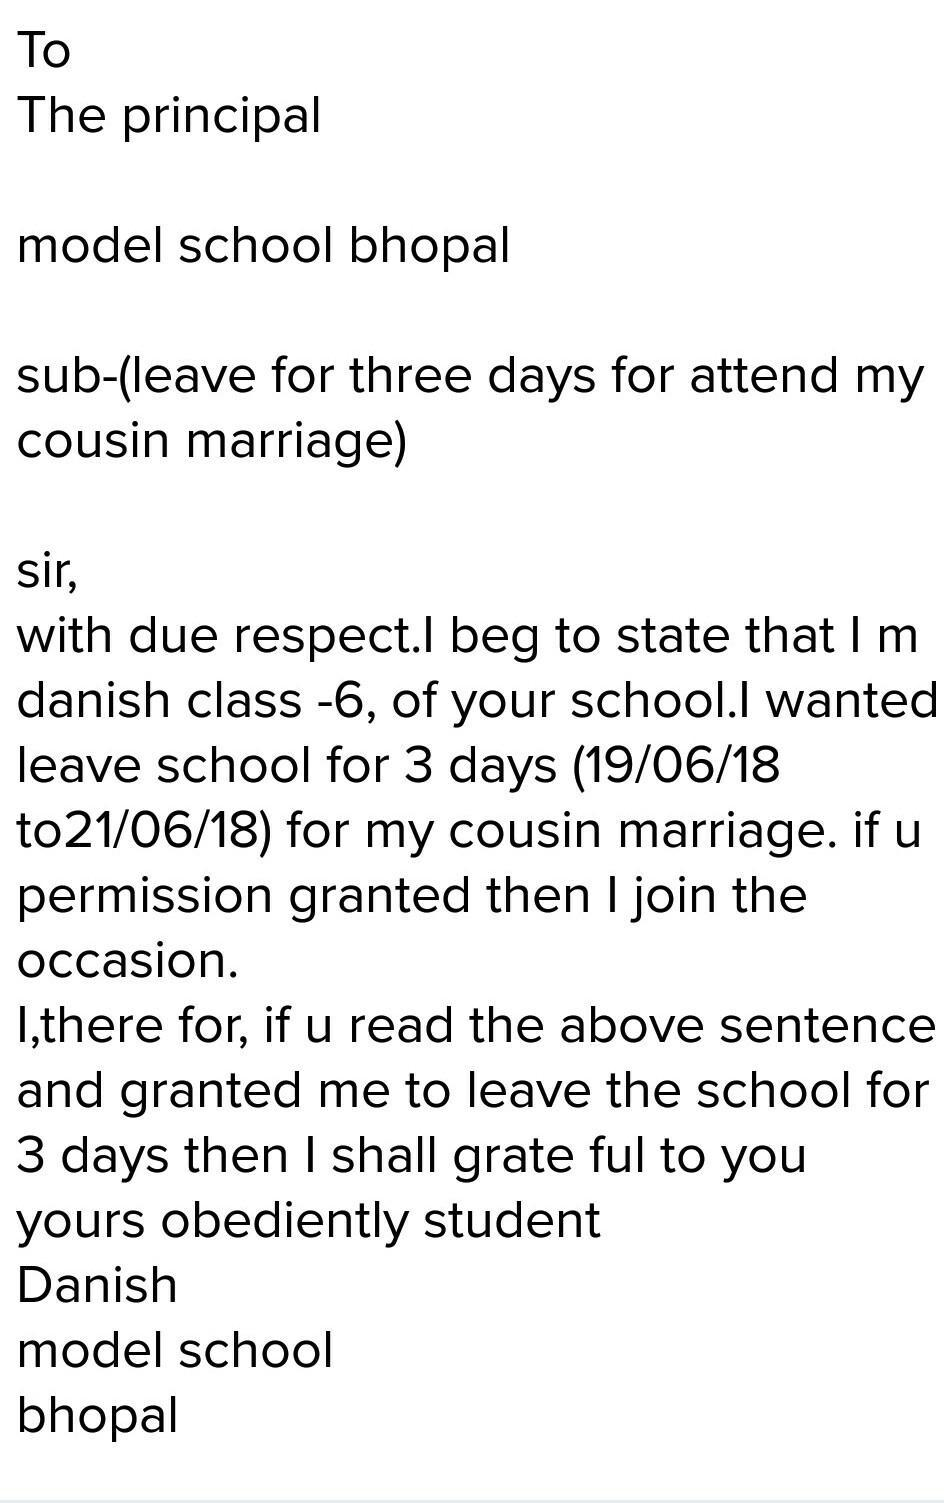 Write one leave application for marriage party 3days - Brainly in